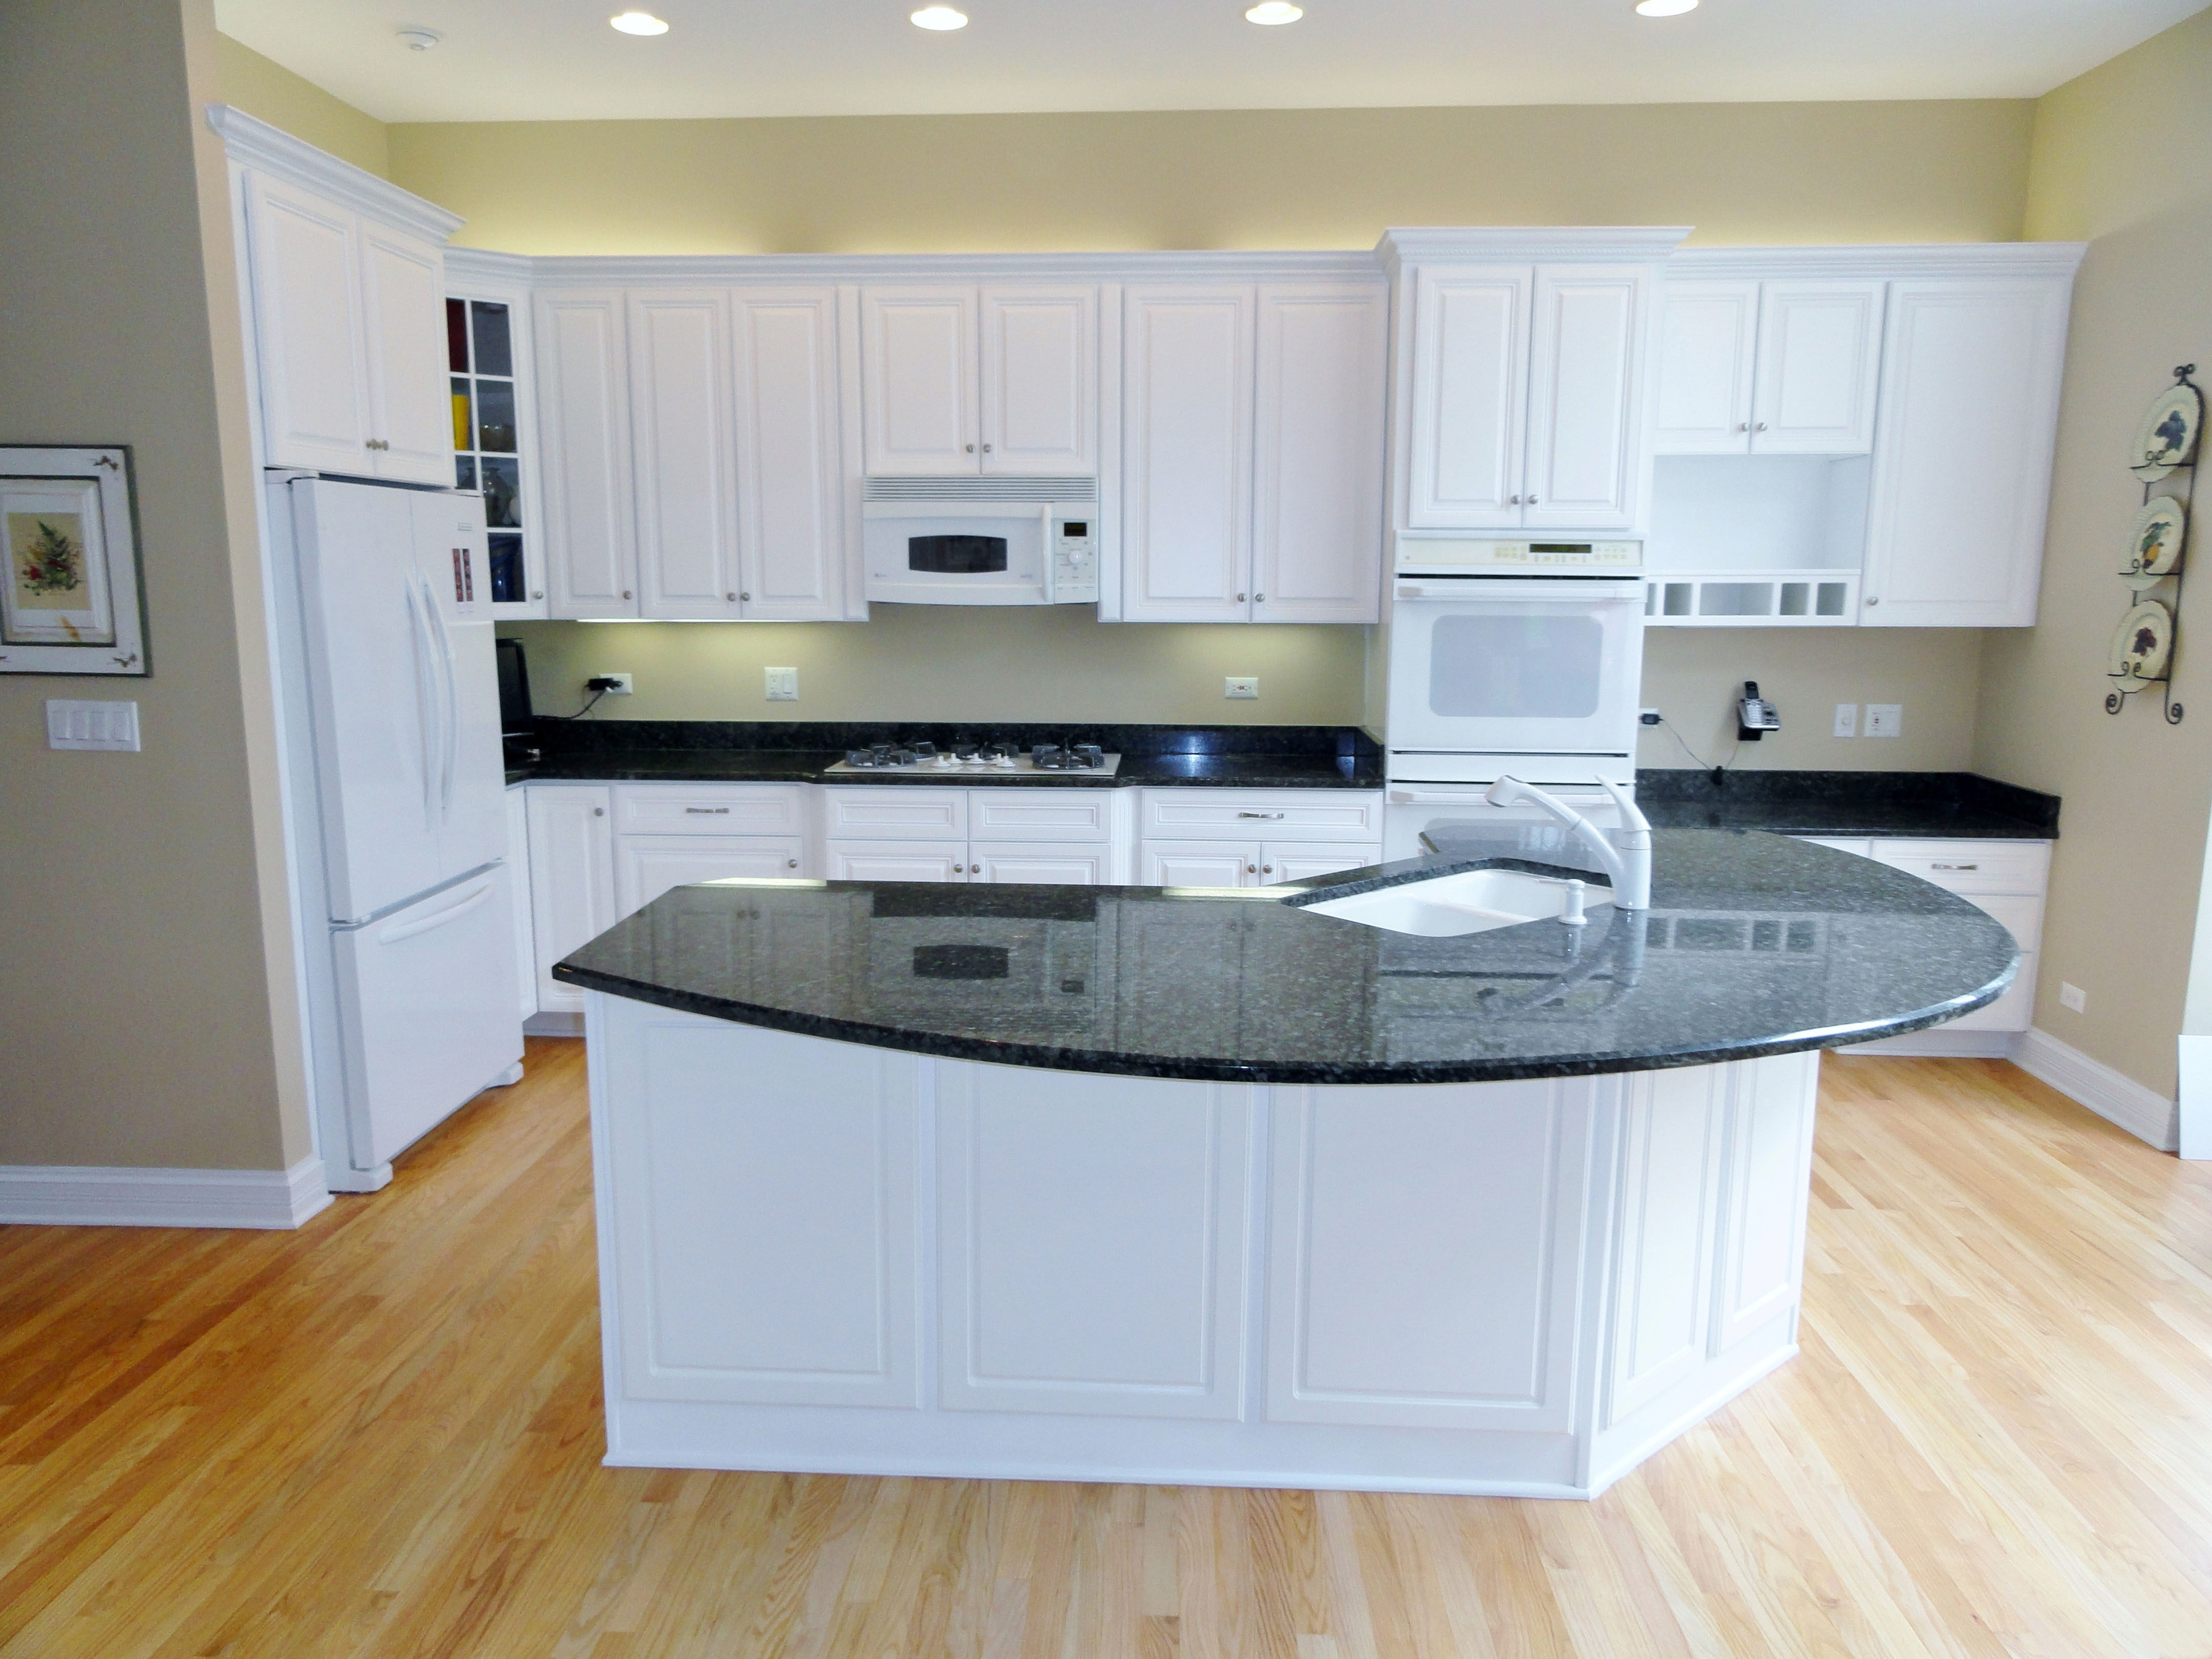 Best Kitchen Gallery: Can I Reface Damaged Cabi S Affordable Cabi Refacing Nu of Refacing Kitchen Cabinets Miami on rachelxblog.com